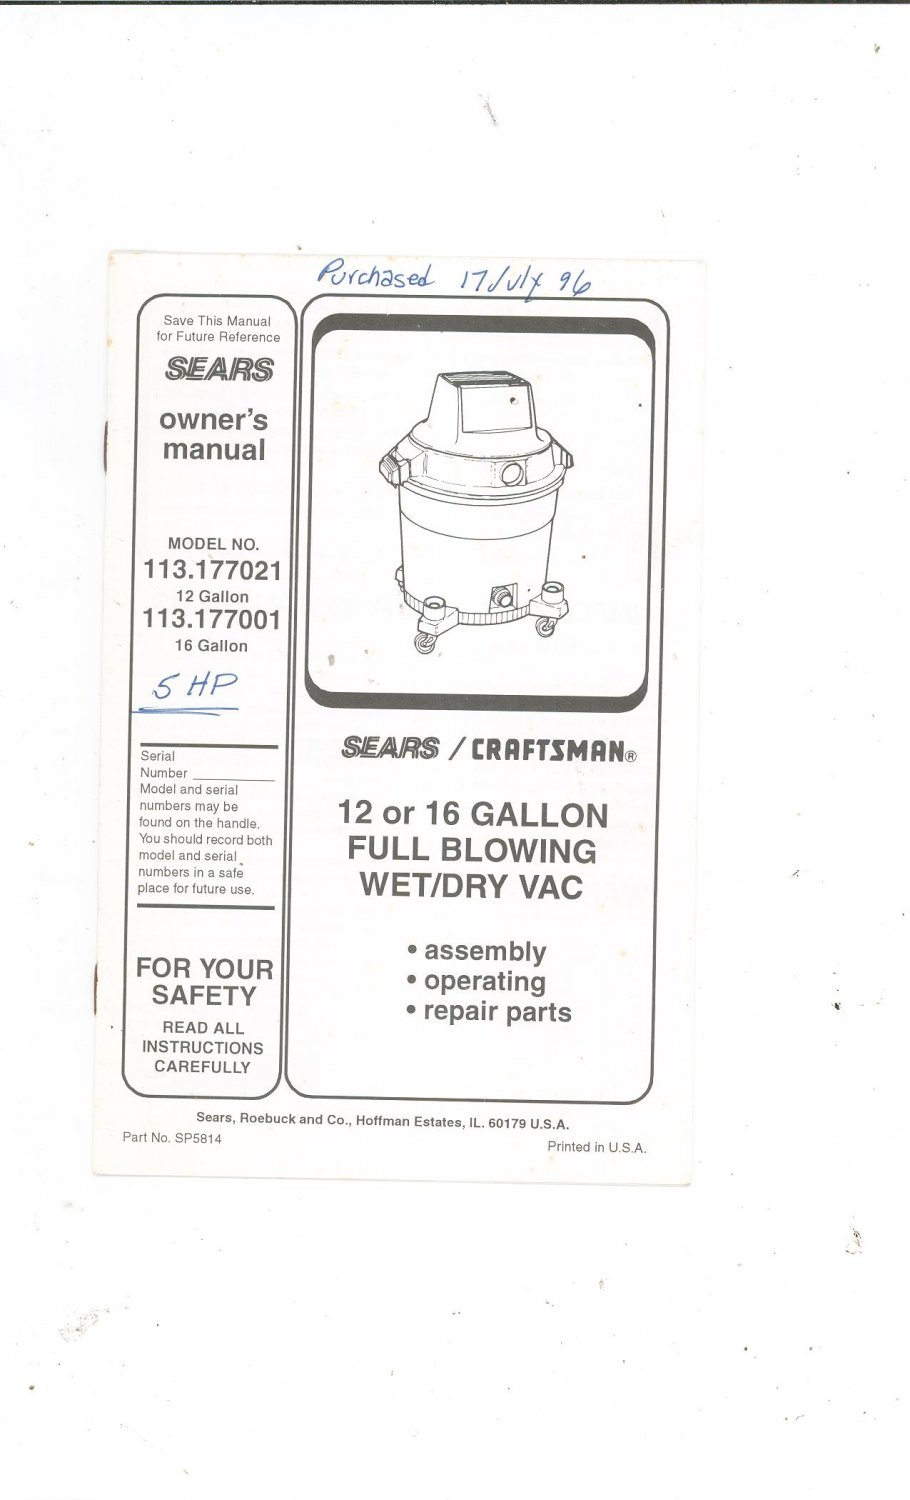 Sears Craftsman 12 or 16 Gallon Full Blowing Wet Dry Vac